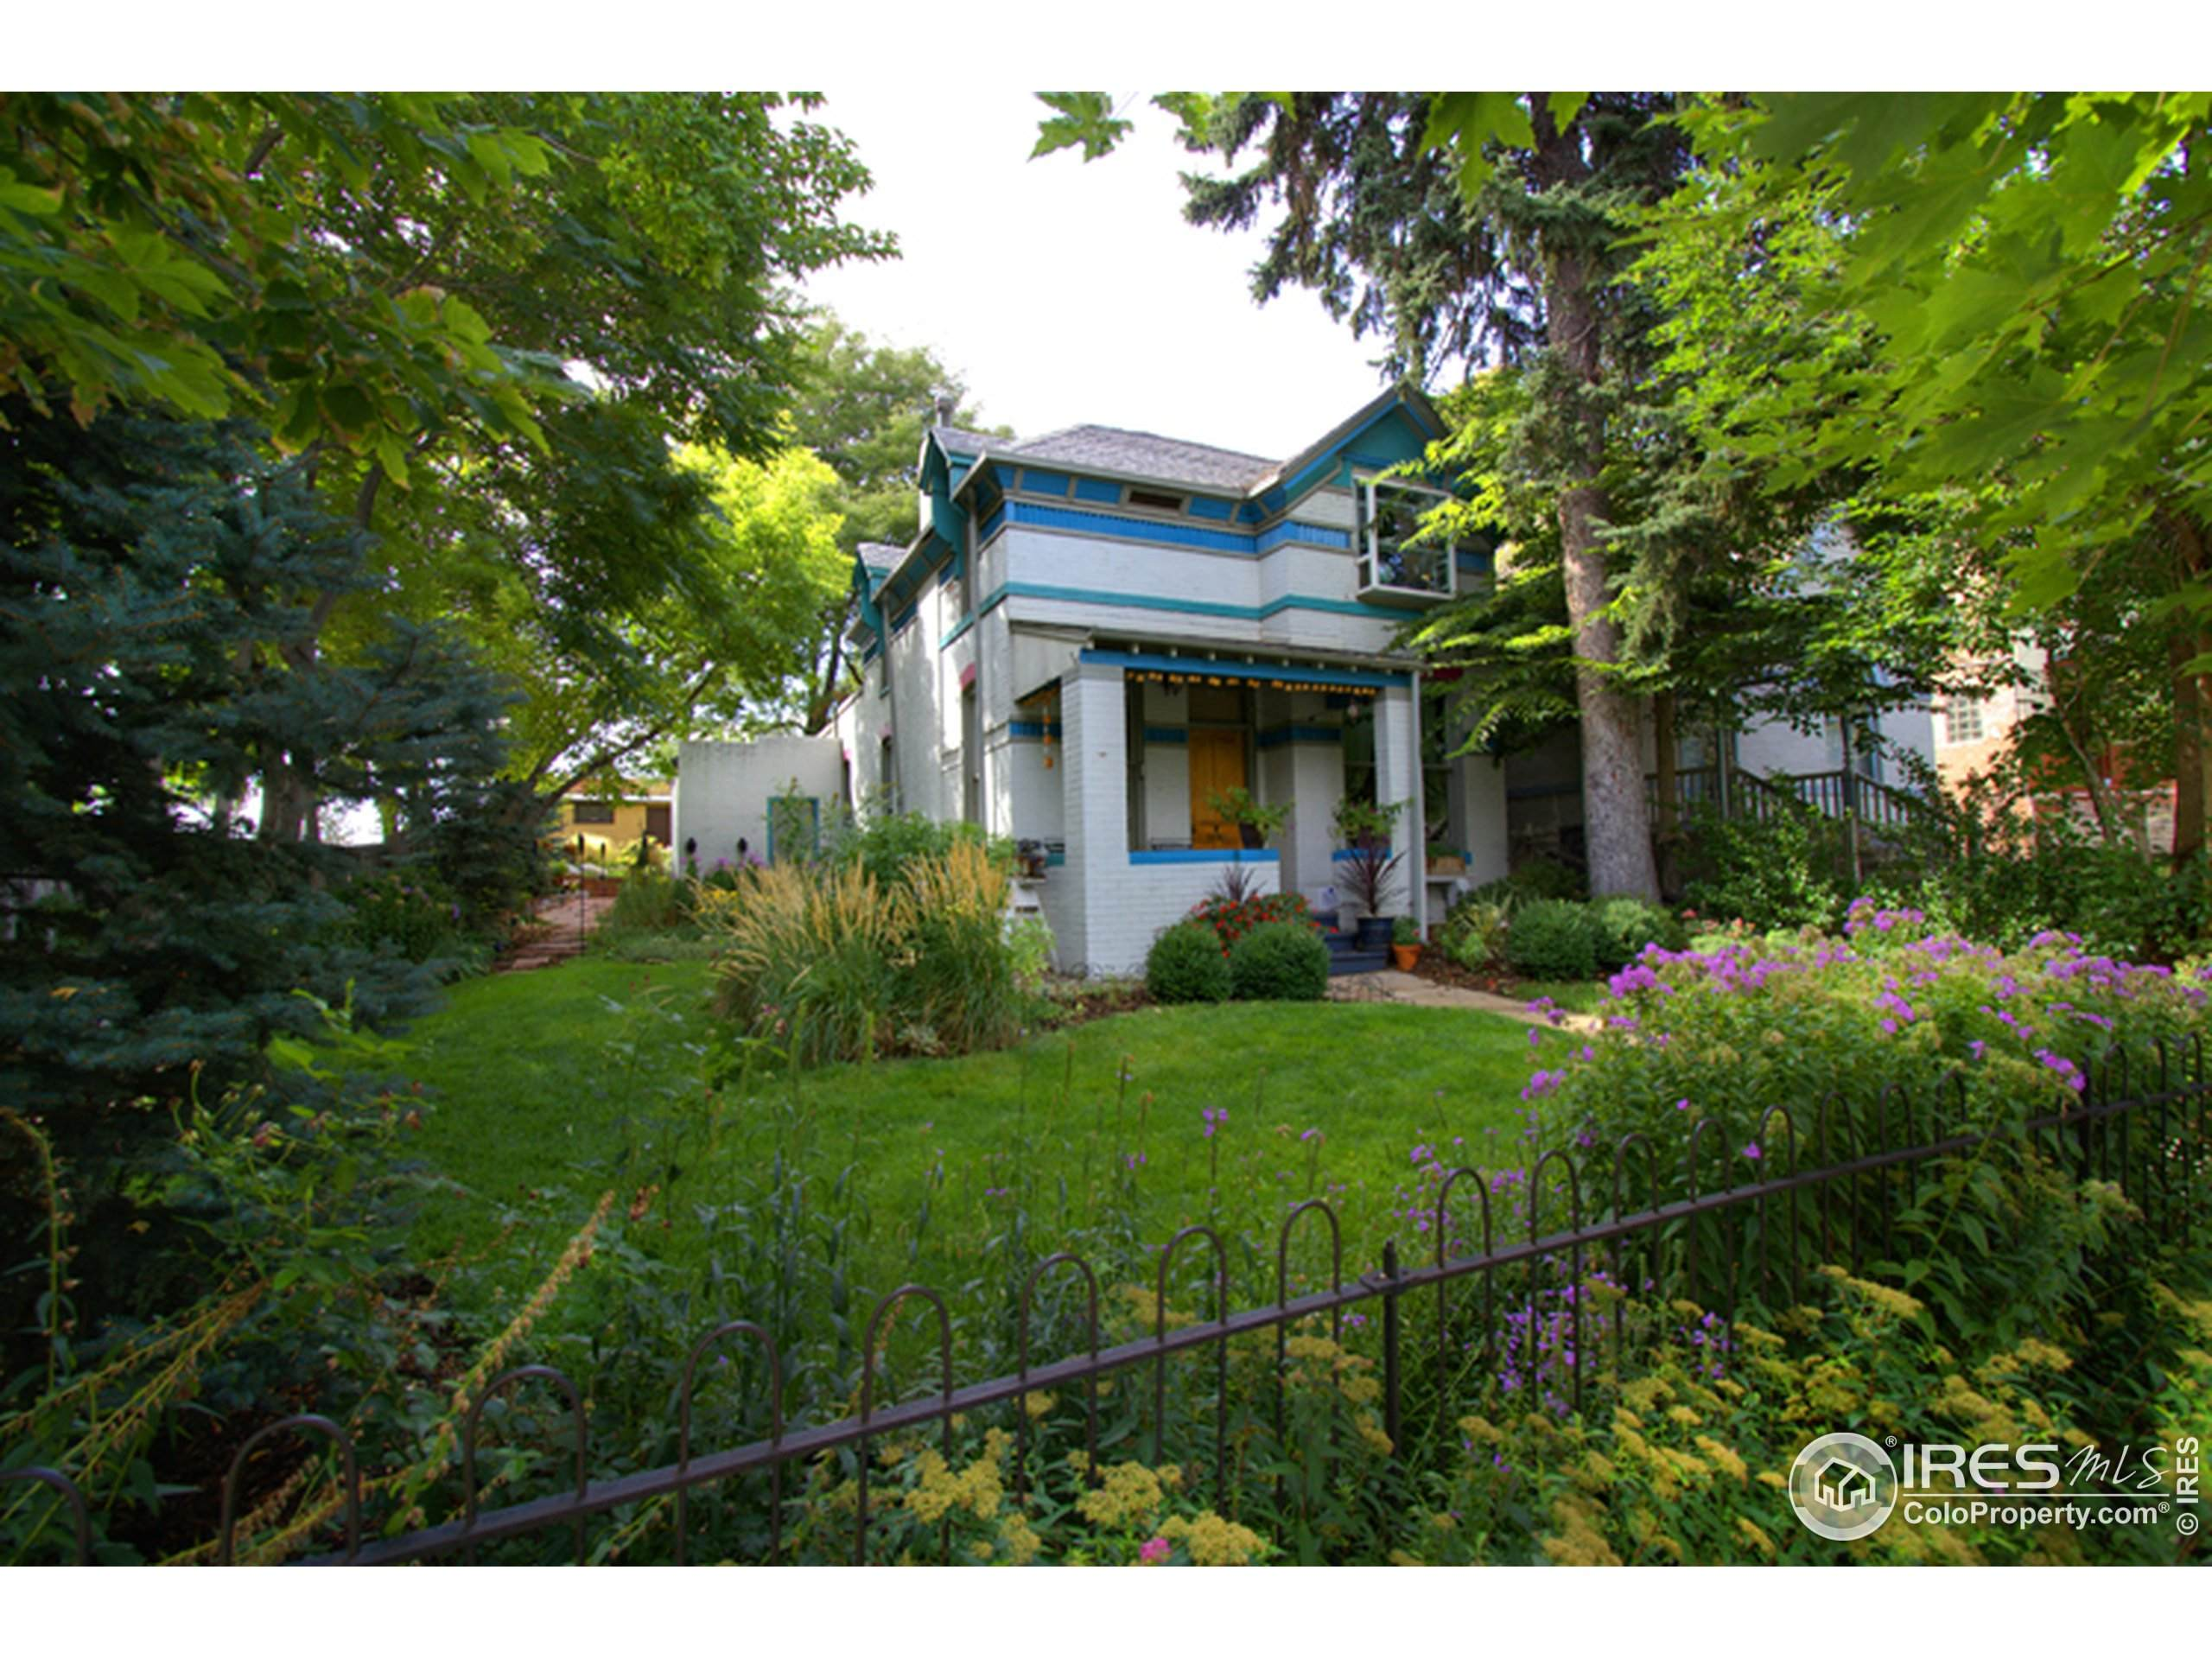 4198 W 99th Ct, Westminster, CO 80031 (#921033) :: The Brokerage Group